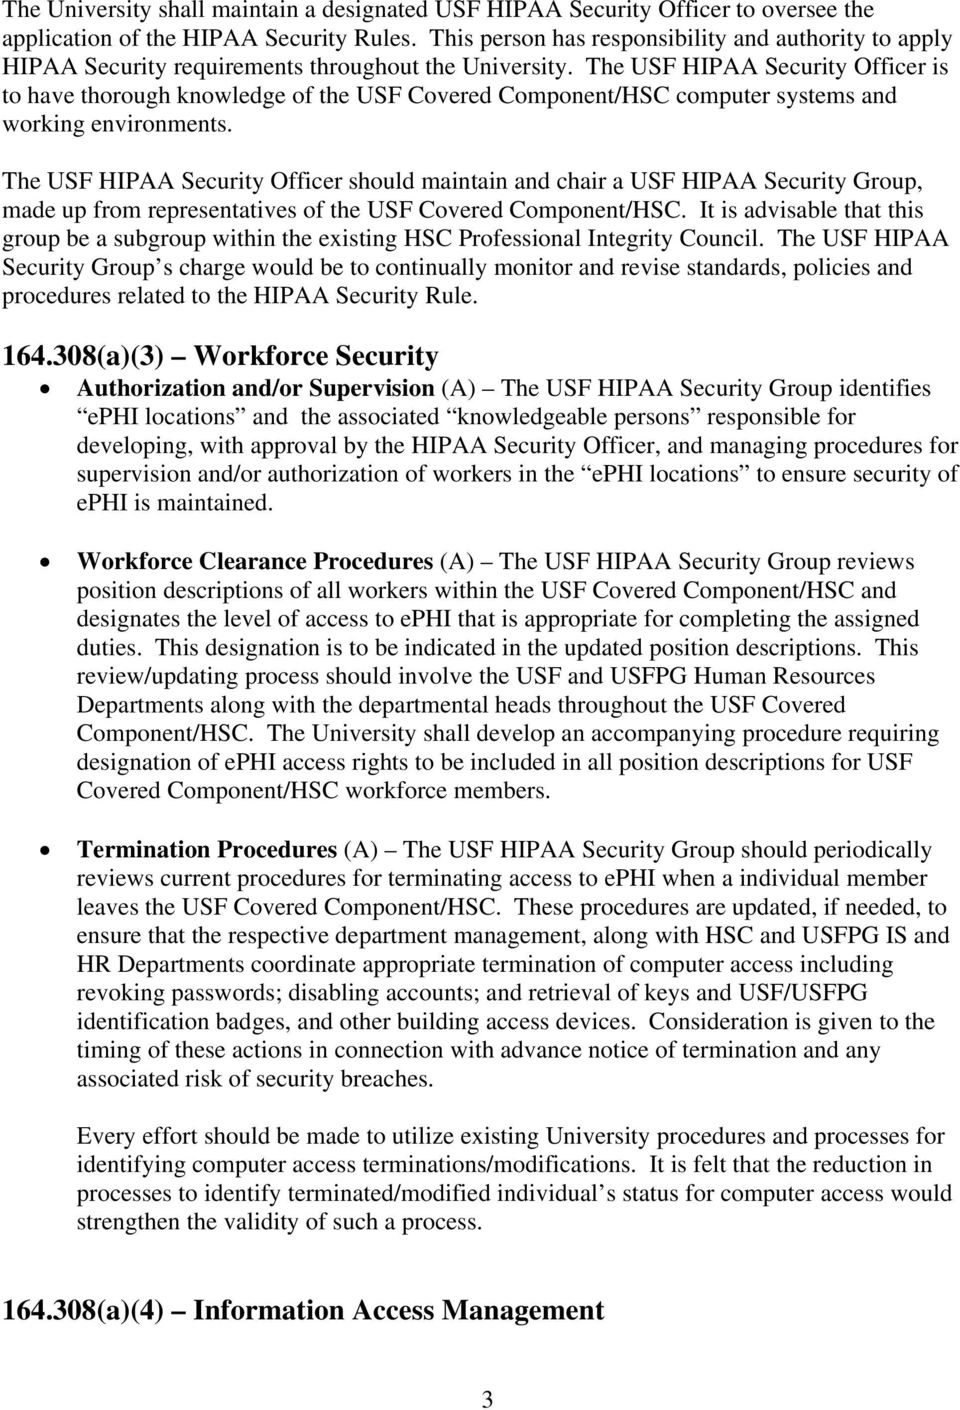 The USF HIPAA Security Officer is to have thorough knowledge of the USF Covered Component/HSC computer systems and working environments.